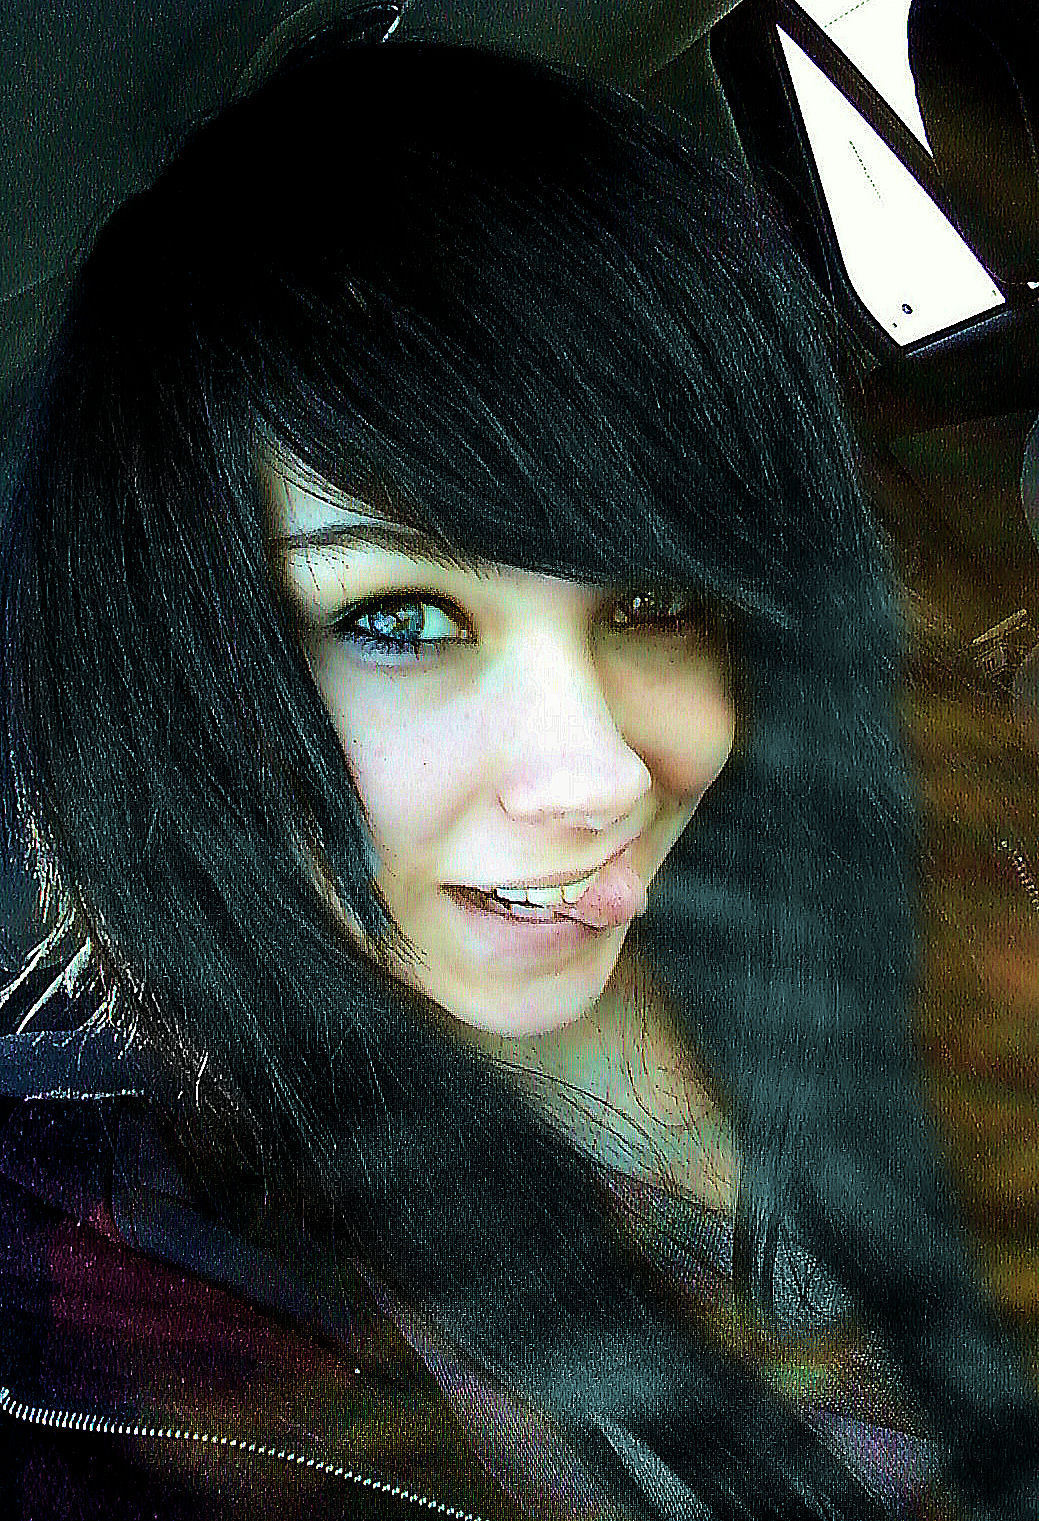 http://images2.fanpop.com/image/photos/11300000/bailey-margaret-emo-girls-11317114-1039-1521.jpg